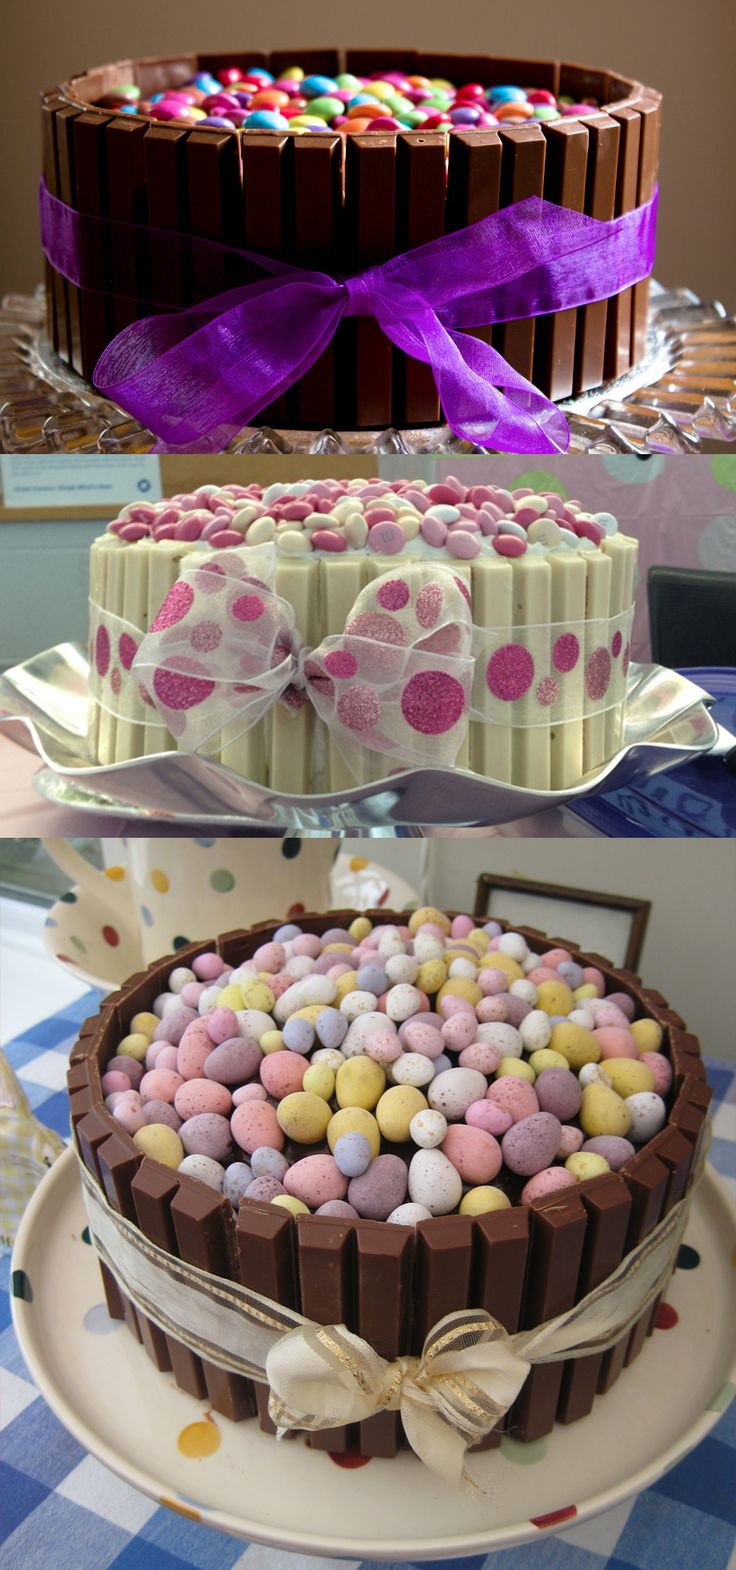 This kit kat mini egg cake is truly ADORABLE perfect for any Easter celebration and will most likely taste perfect too !